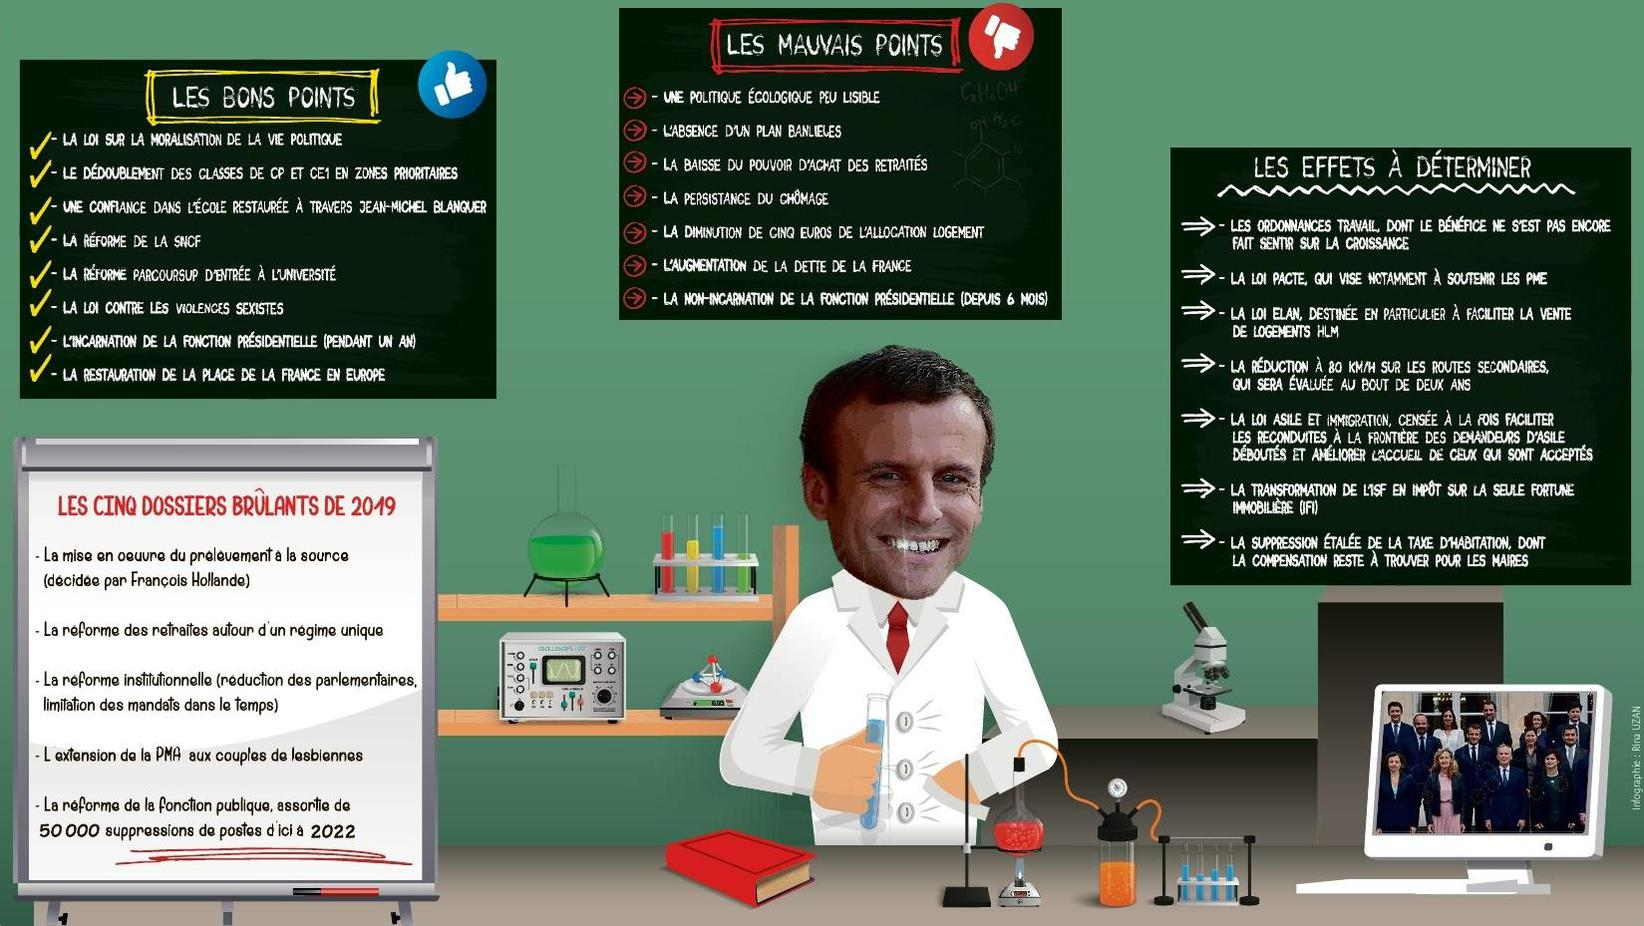 THIERRY PRUDHON tprudhon@nicematin.fr